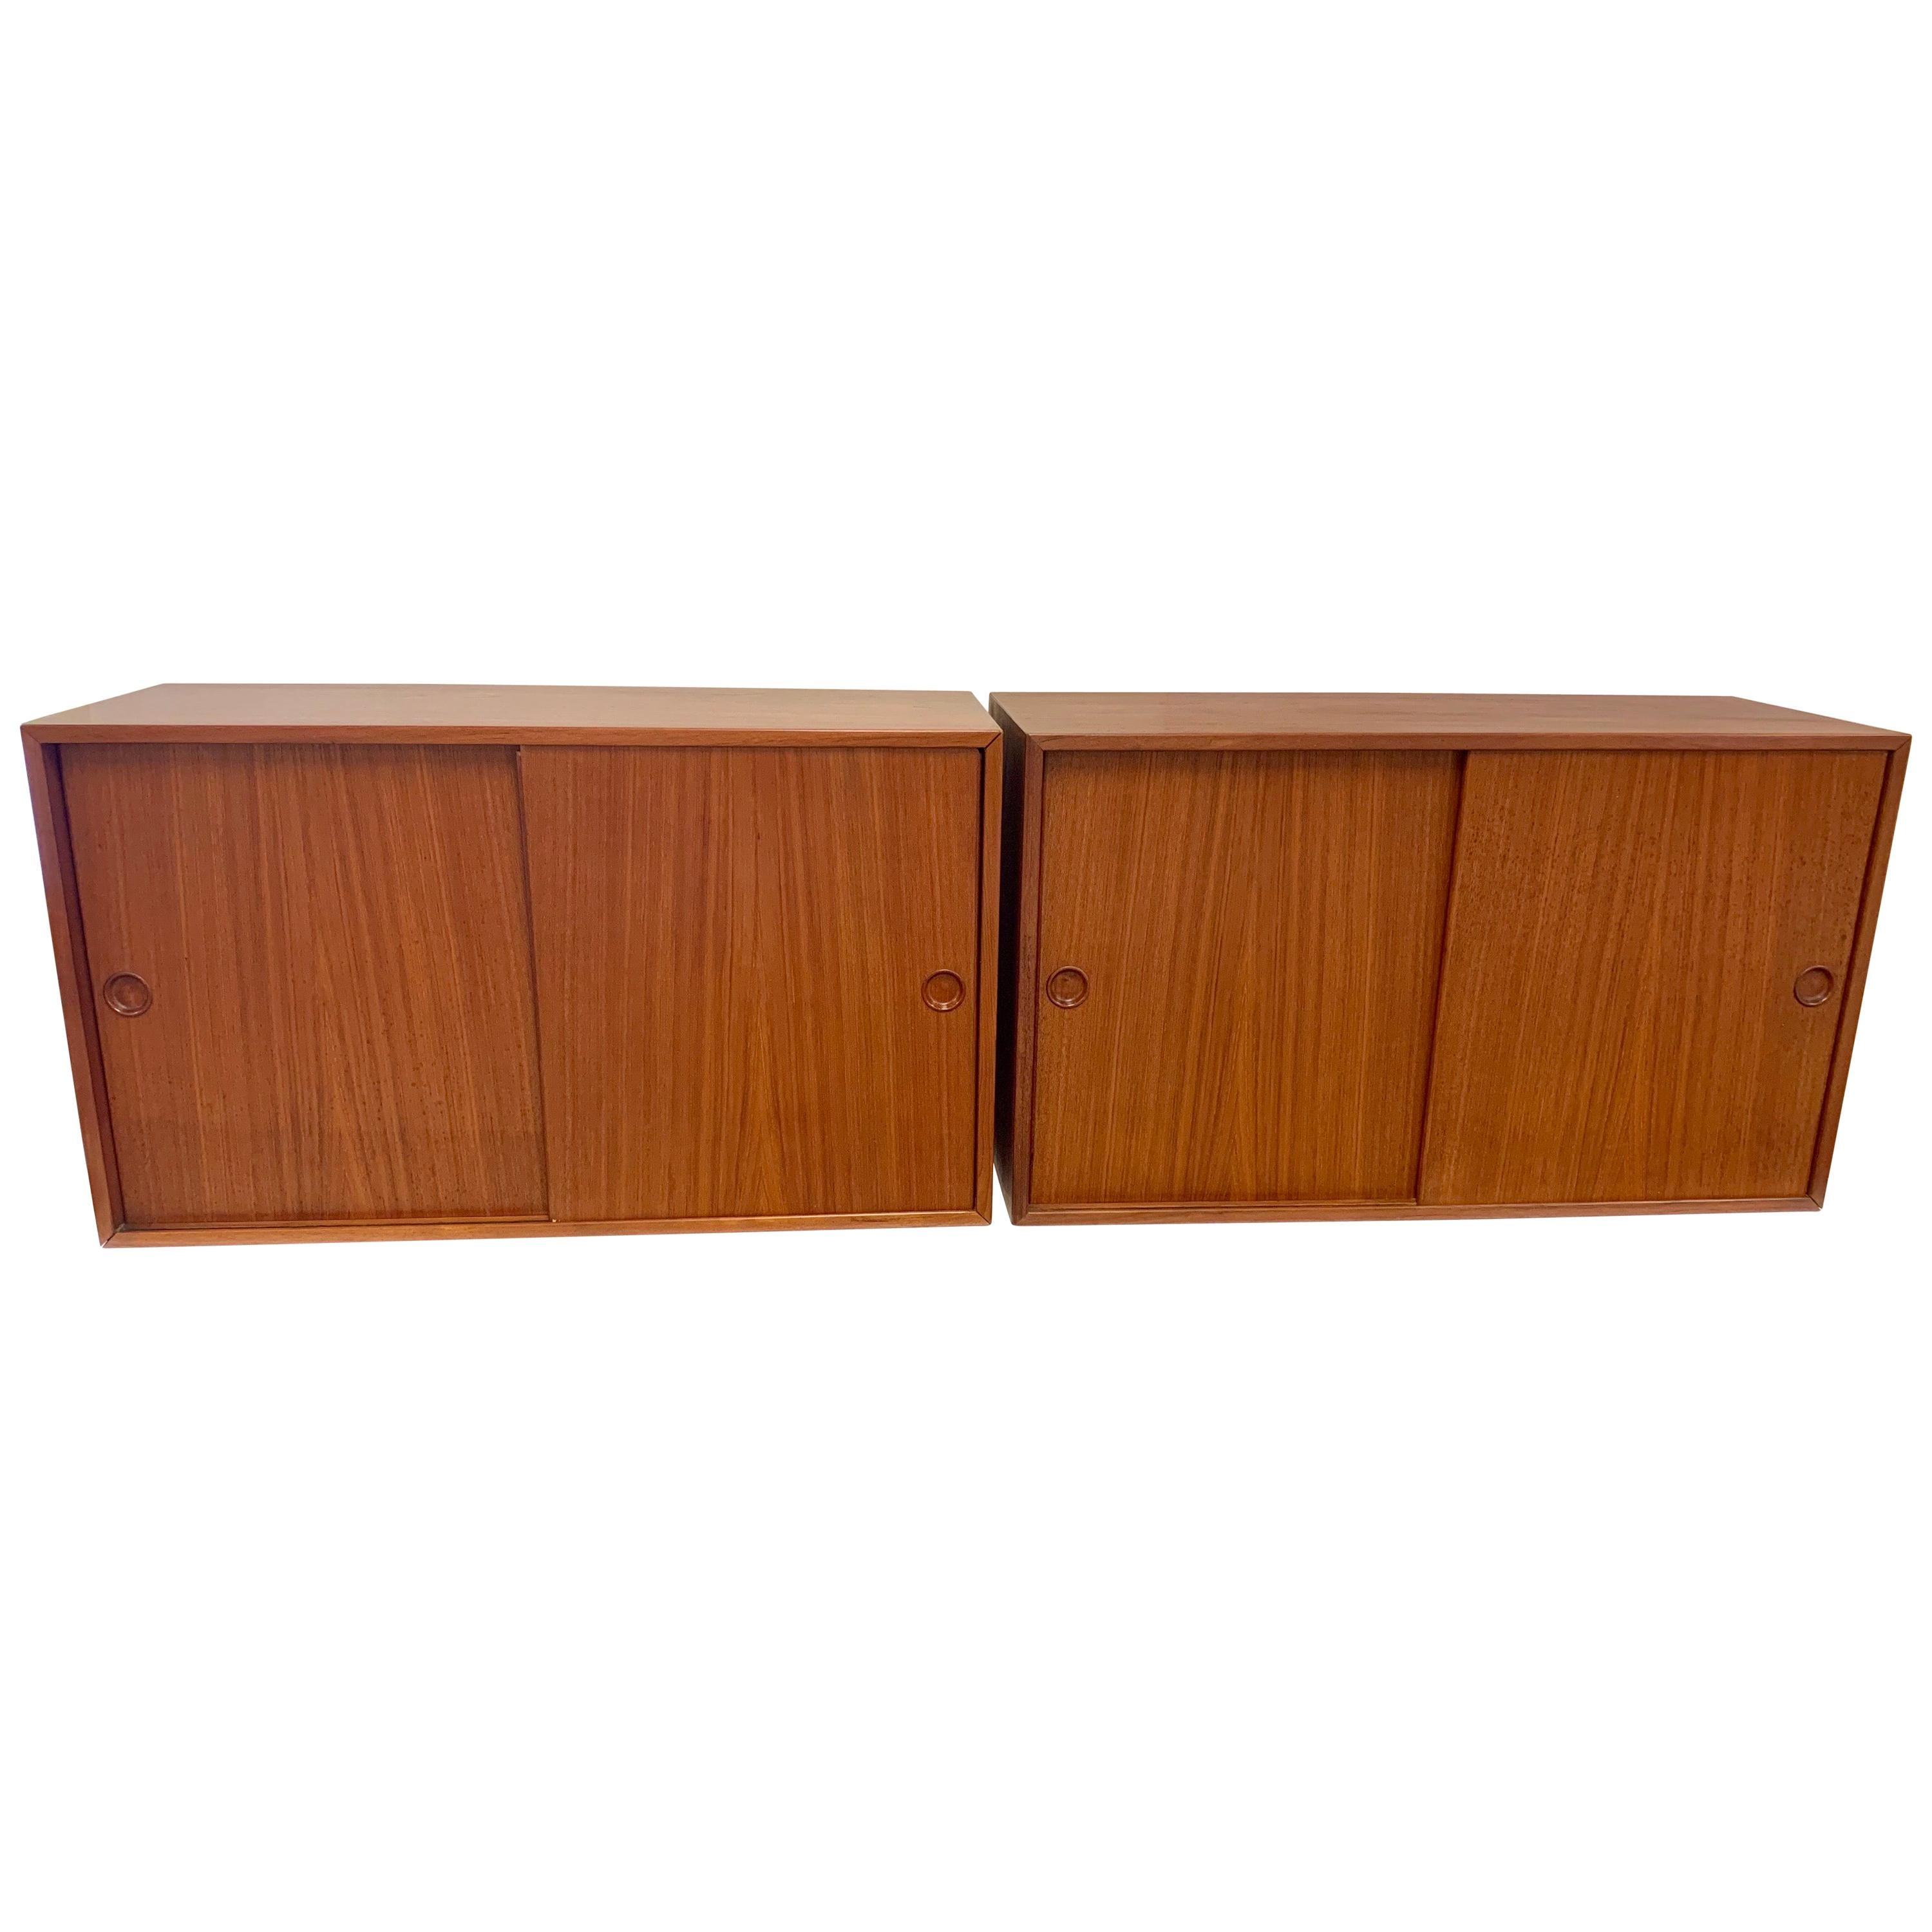 Mid Century Hans Wegner Wall Mounted Sideboards Hanging Cabinets, Pair